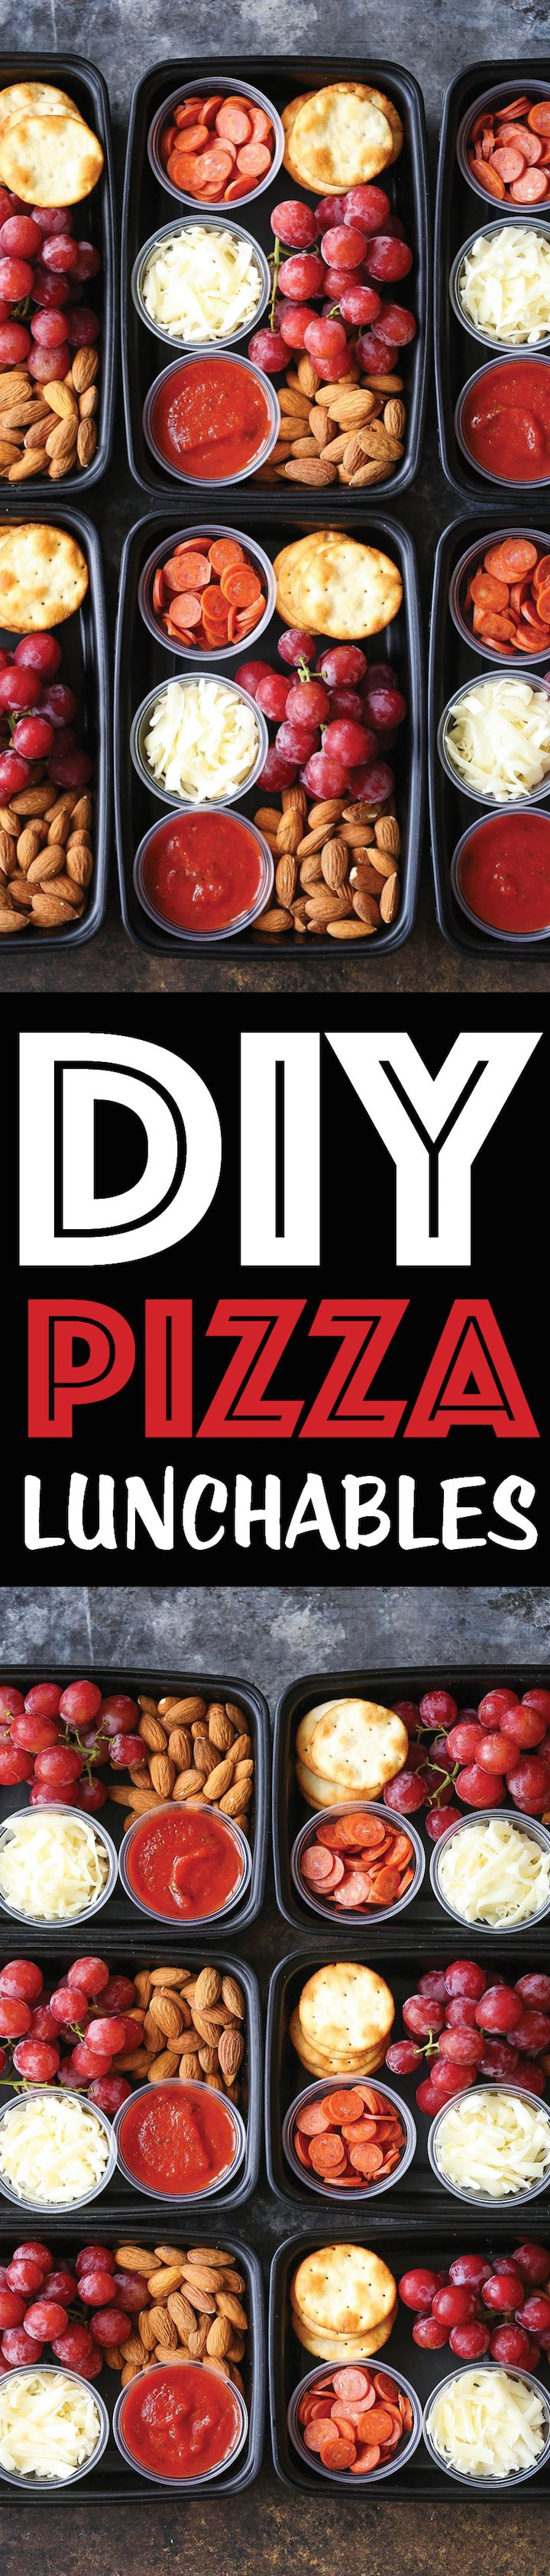 DIY Pizza Lunchables - This is so much better, tastier and healthier than the store-bought kind! Prep/make ahead of time for the week in just 10-15 min!